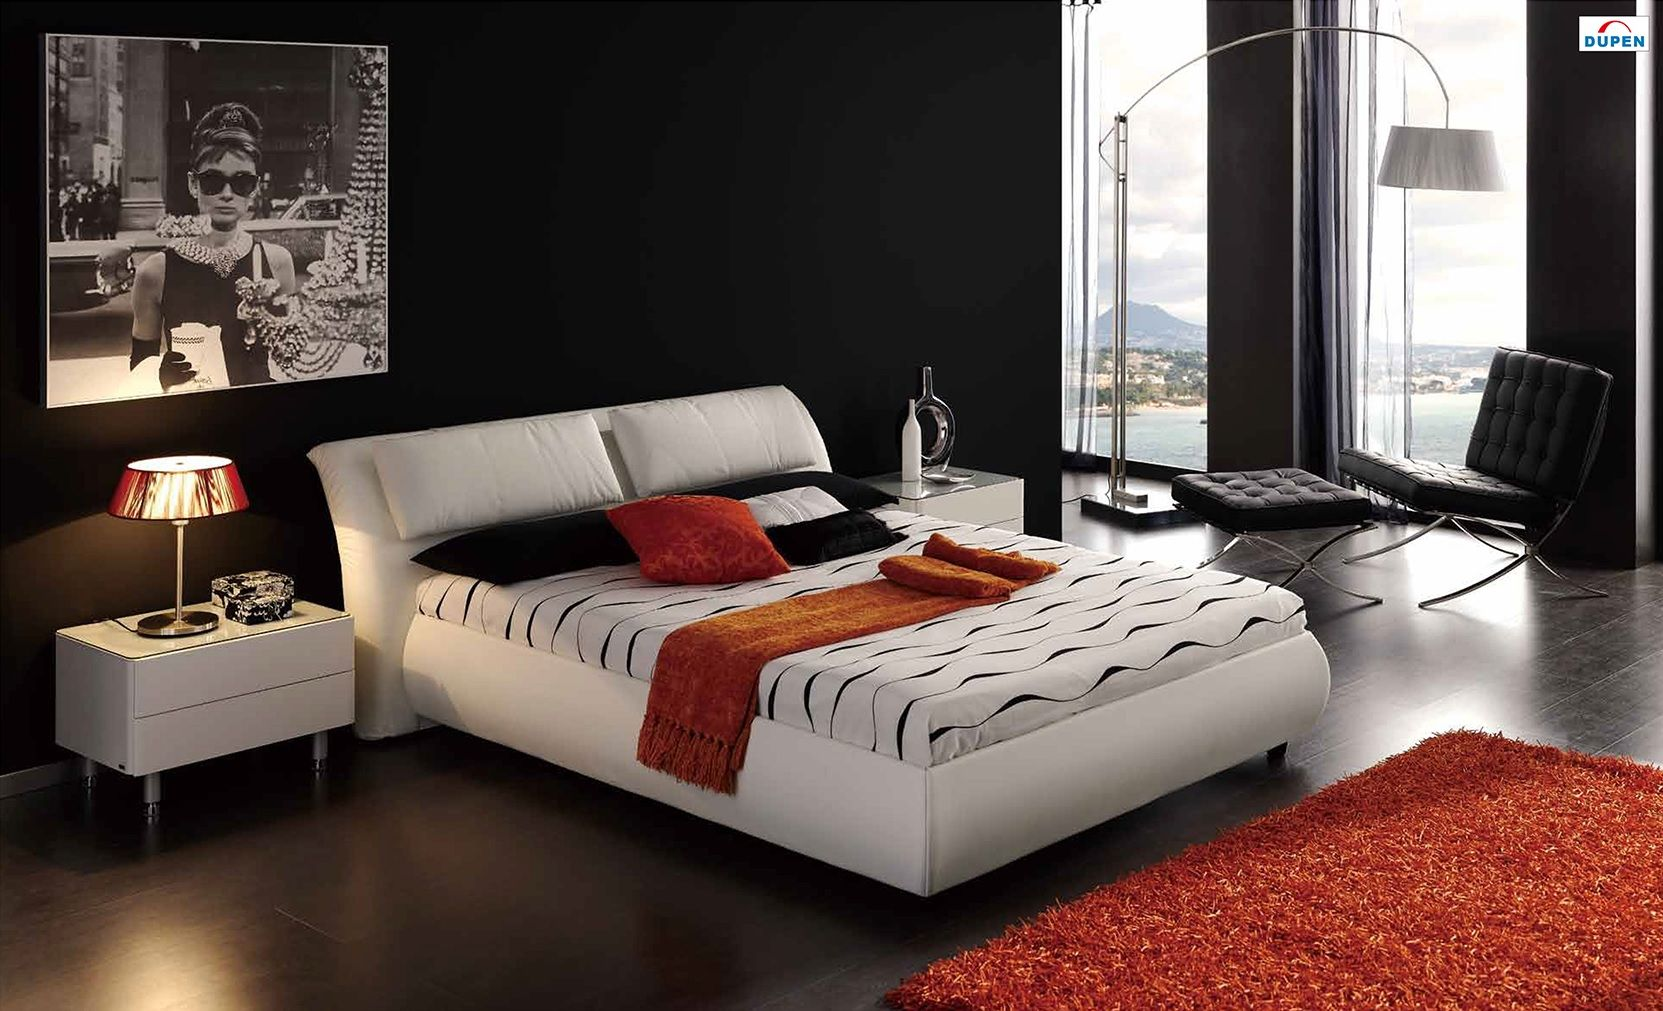 Meg 615 Bedroom Set In White Leather By Dupen, Made In Spain Https:/